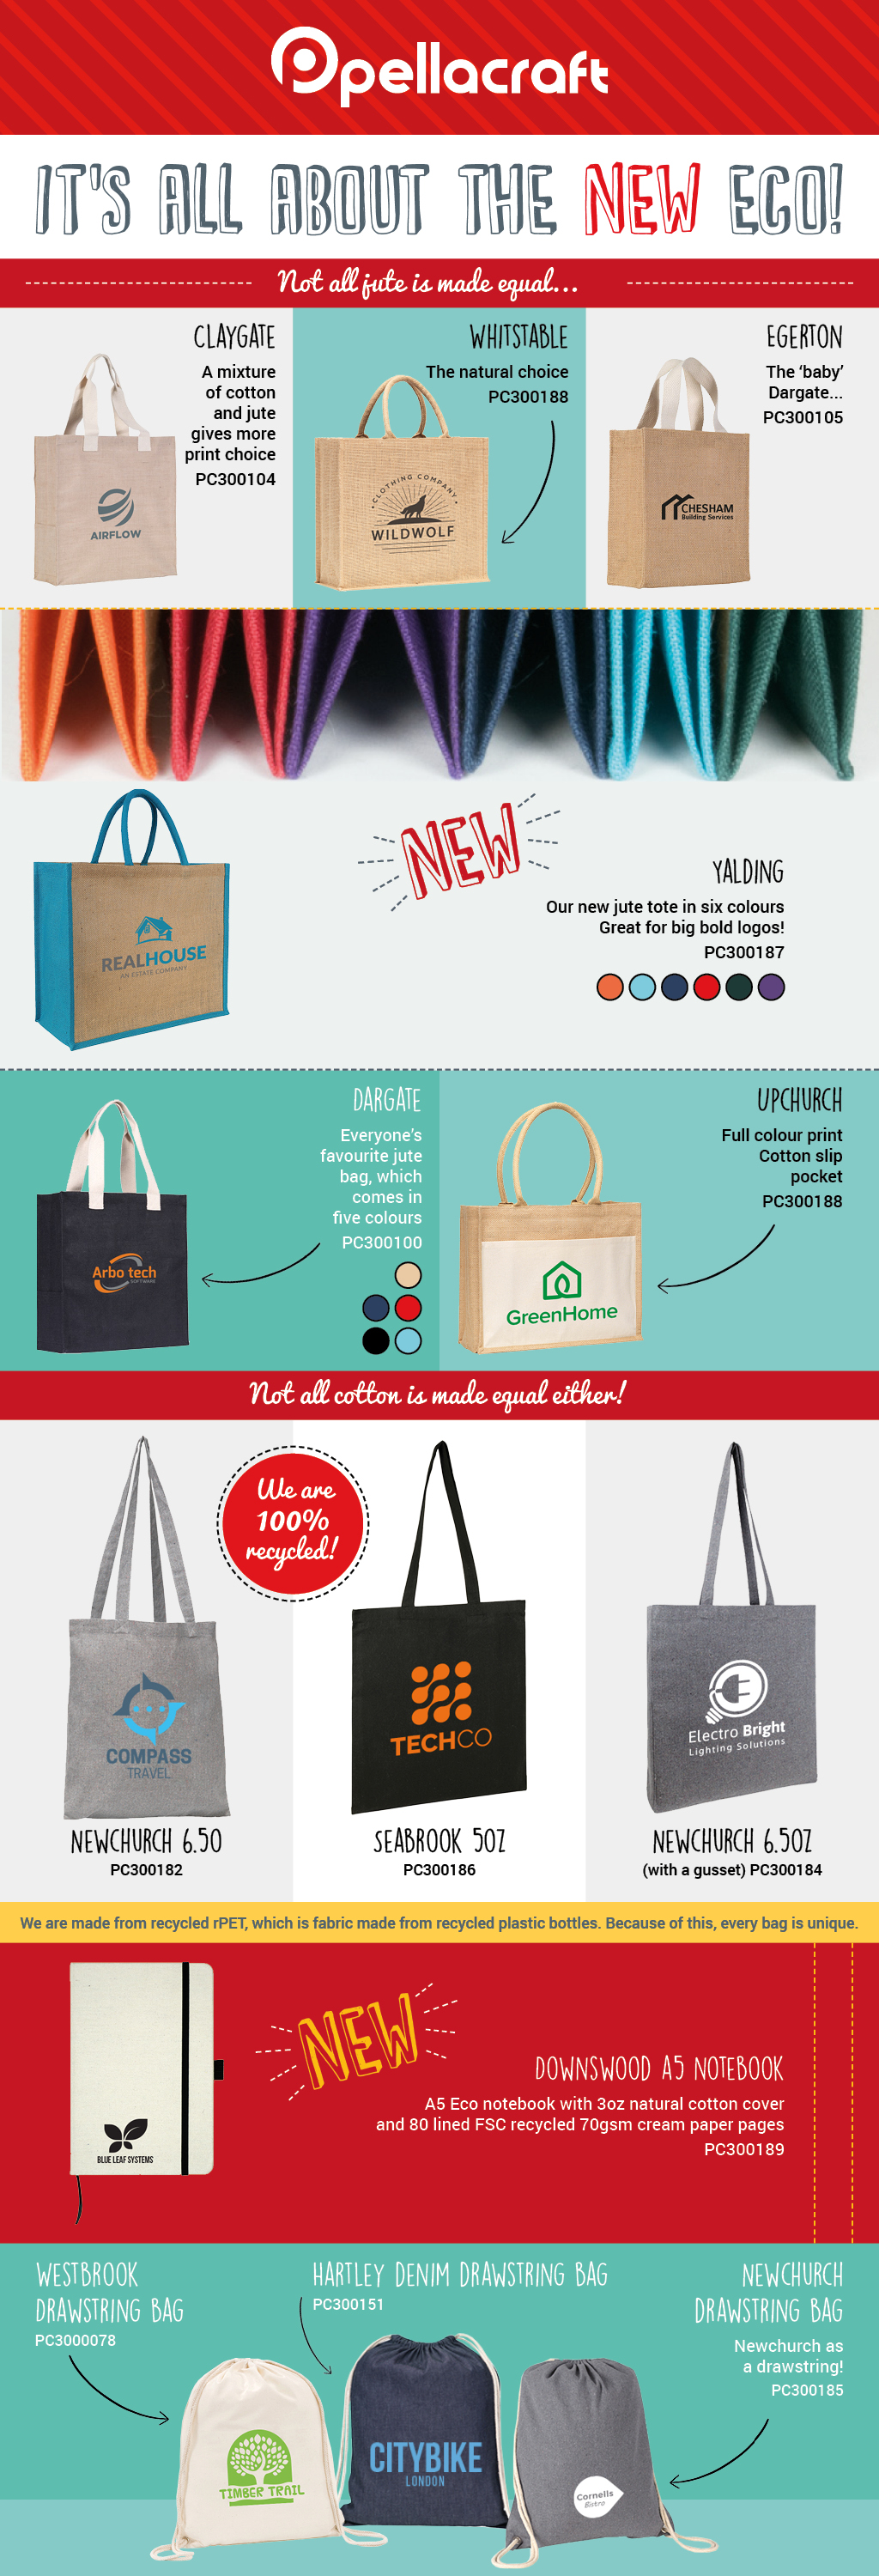 Pellacraft Eco and Environmentally Friendly Bags